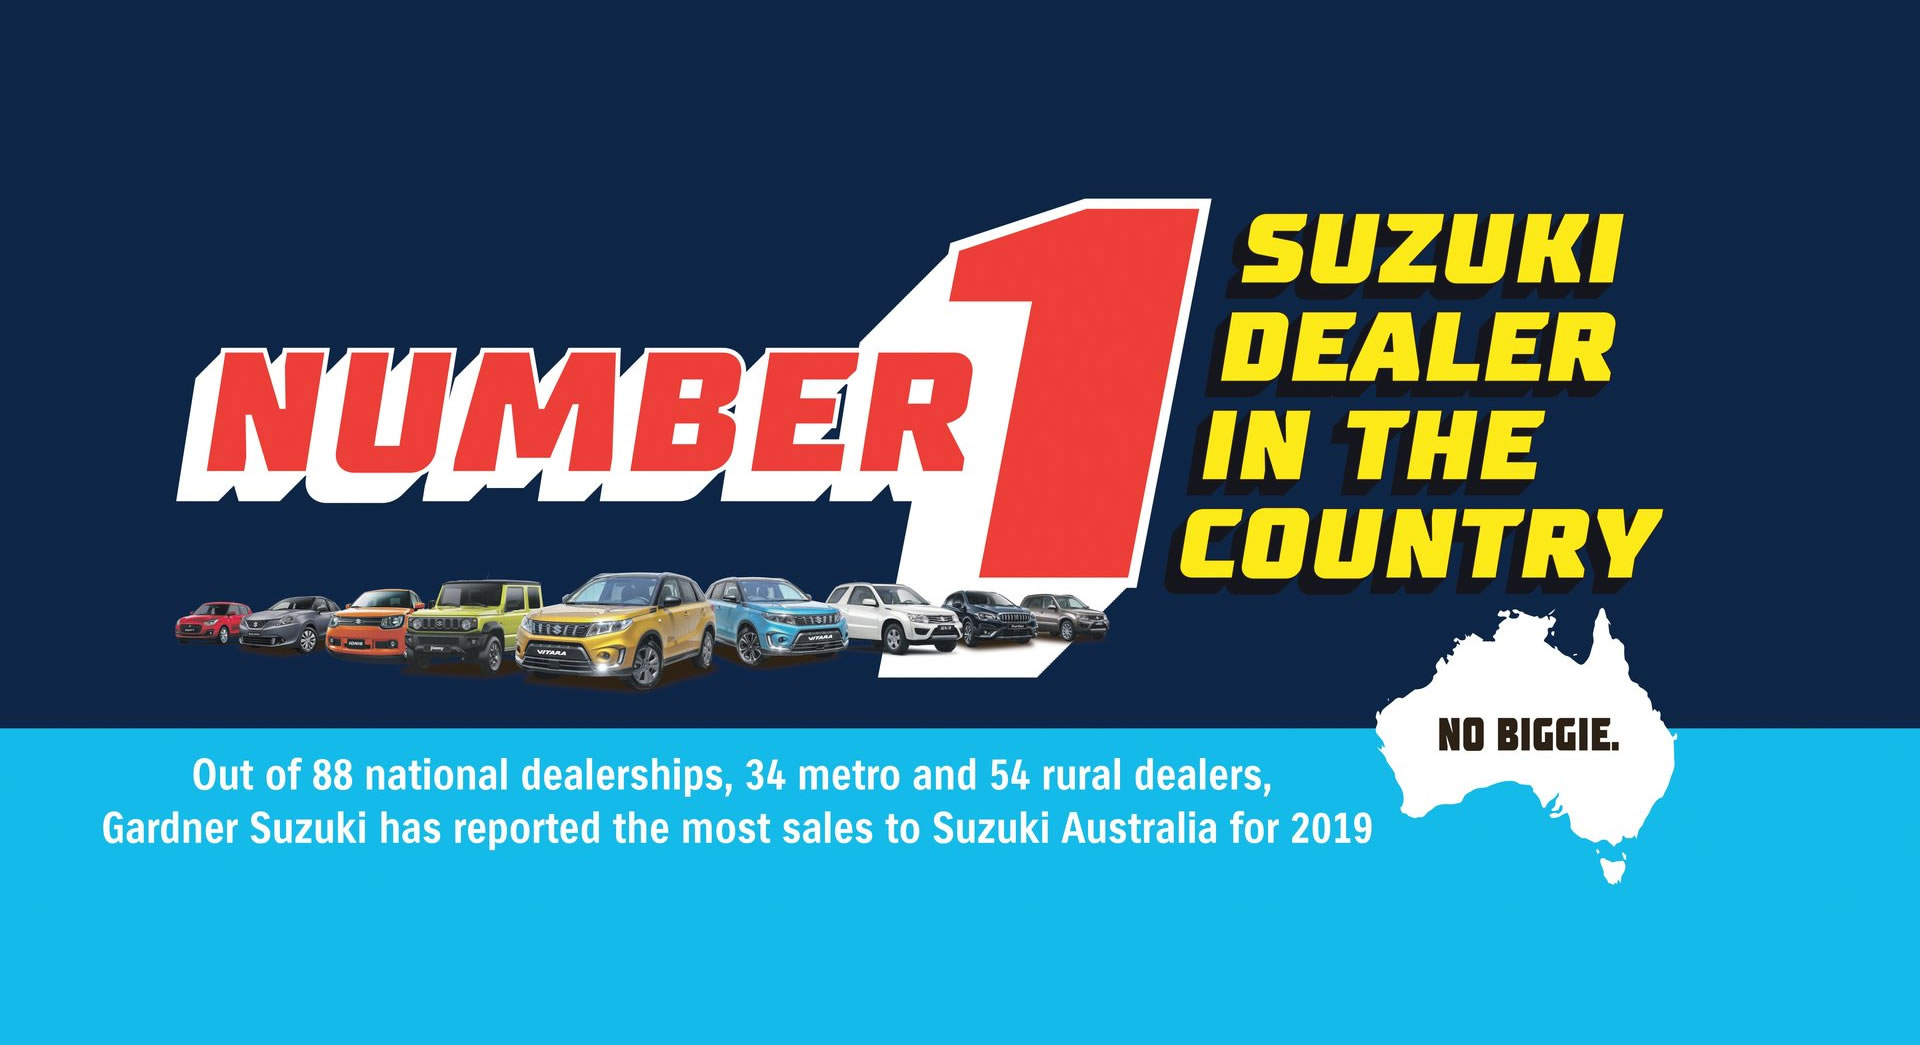 Gardner Suzuki Number 1 Dealer In The Country